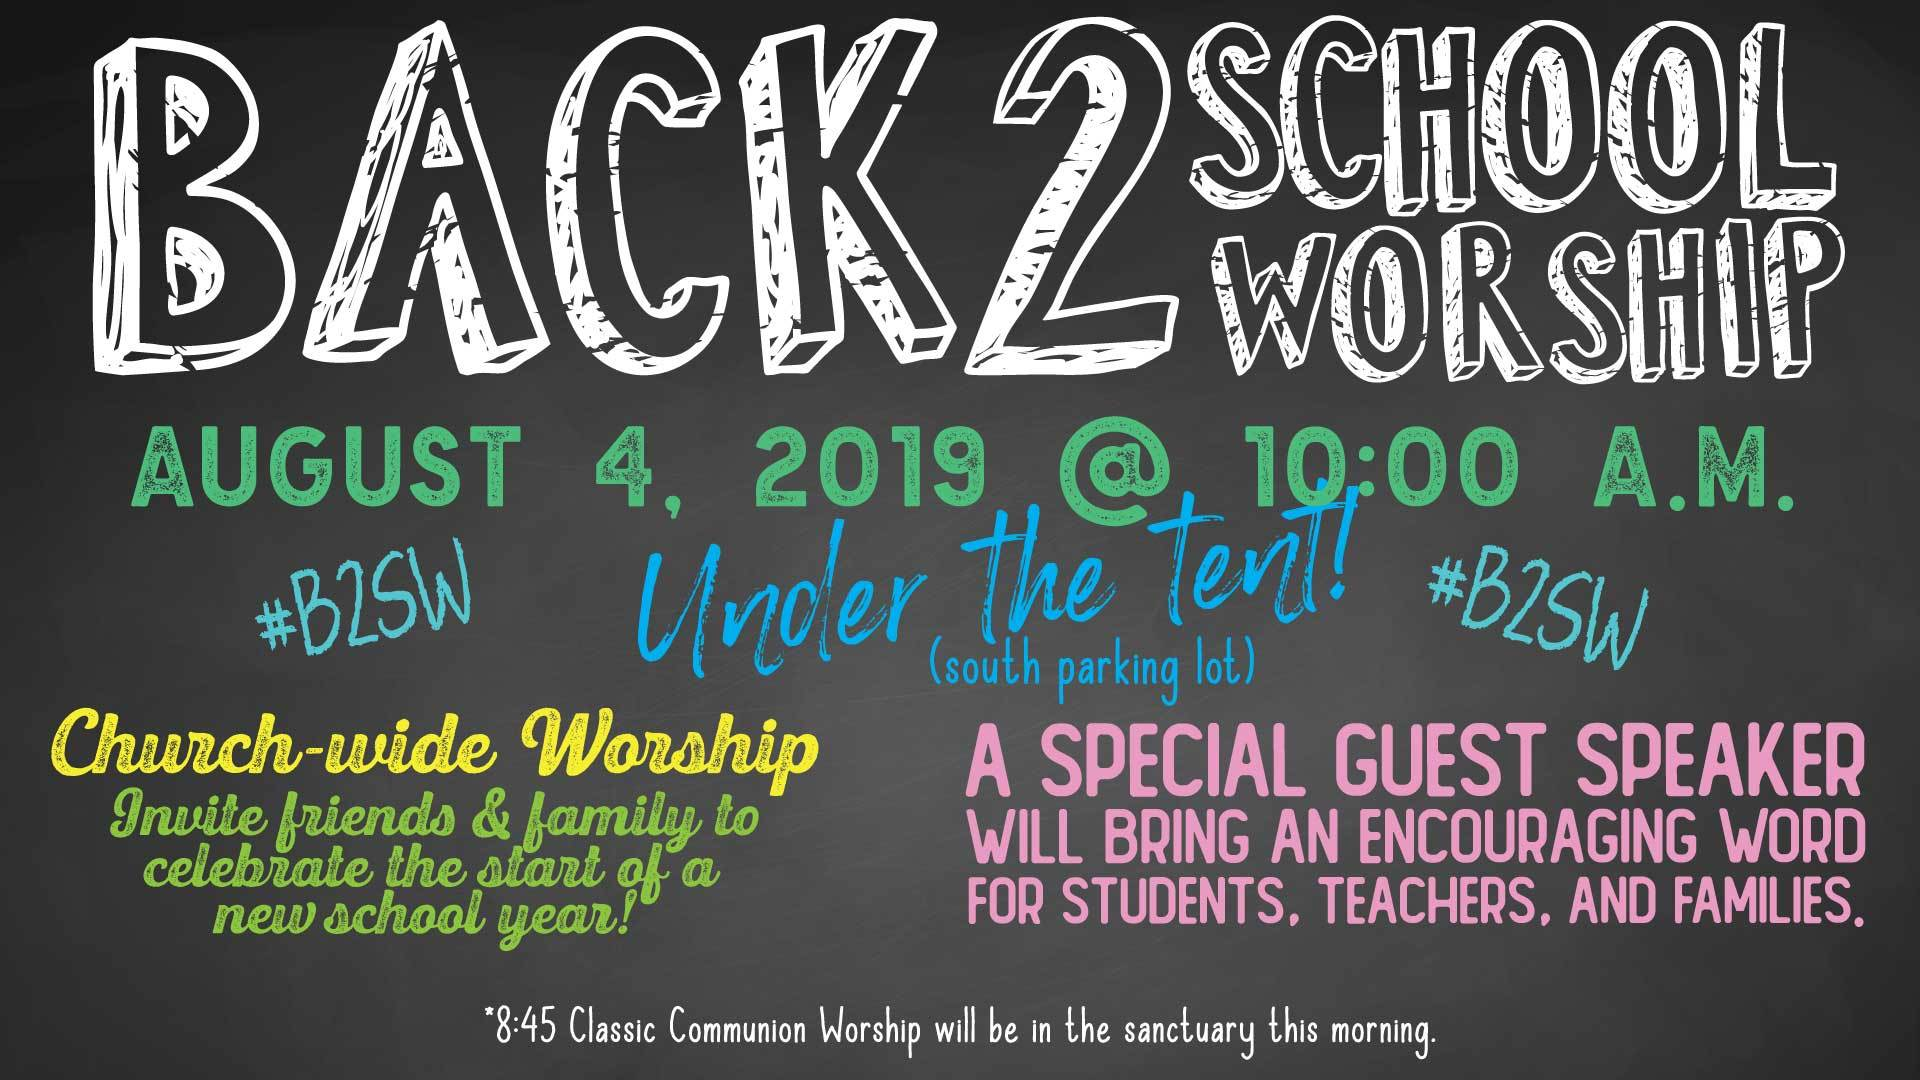 Back 2 School Worship, Sunday, August 4, in the Big Tent ...